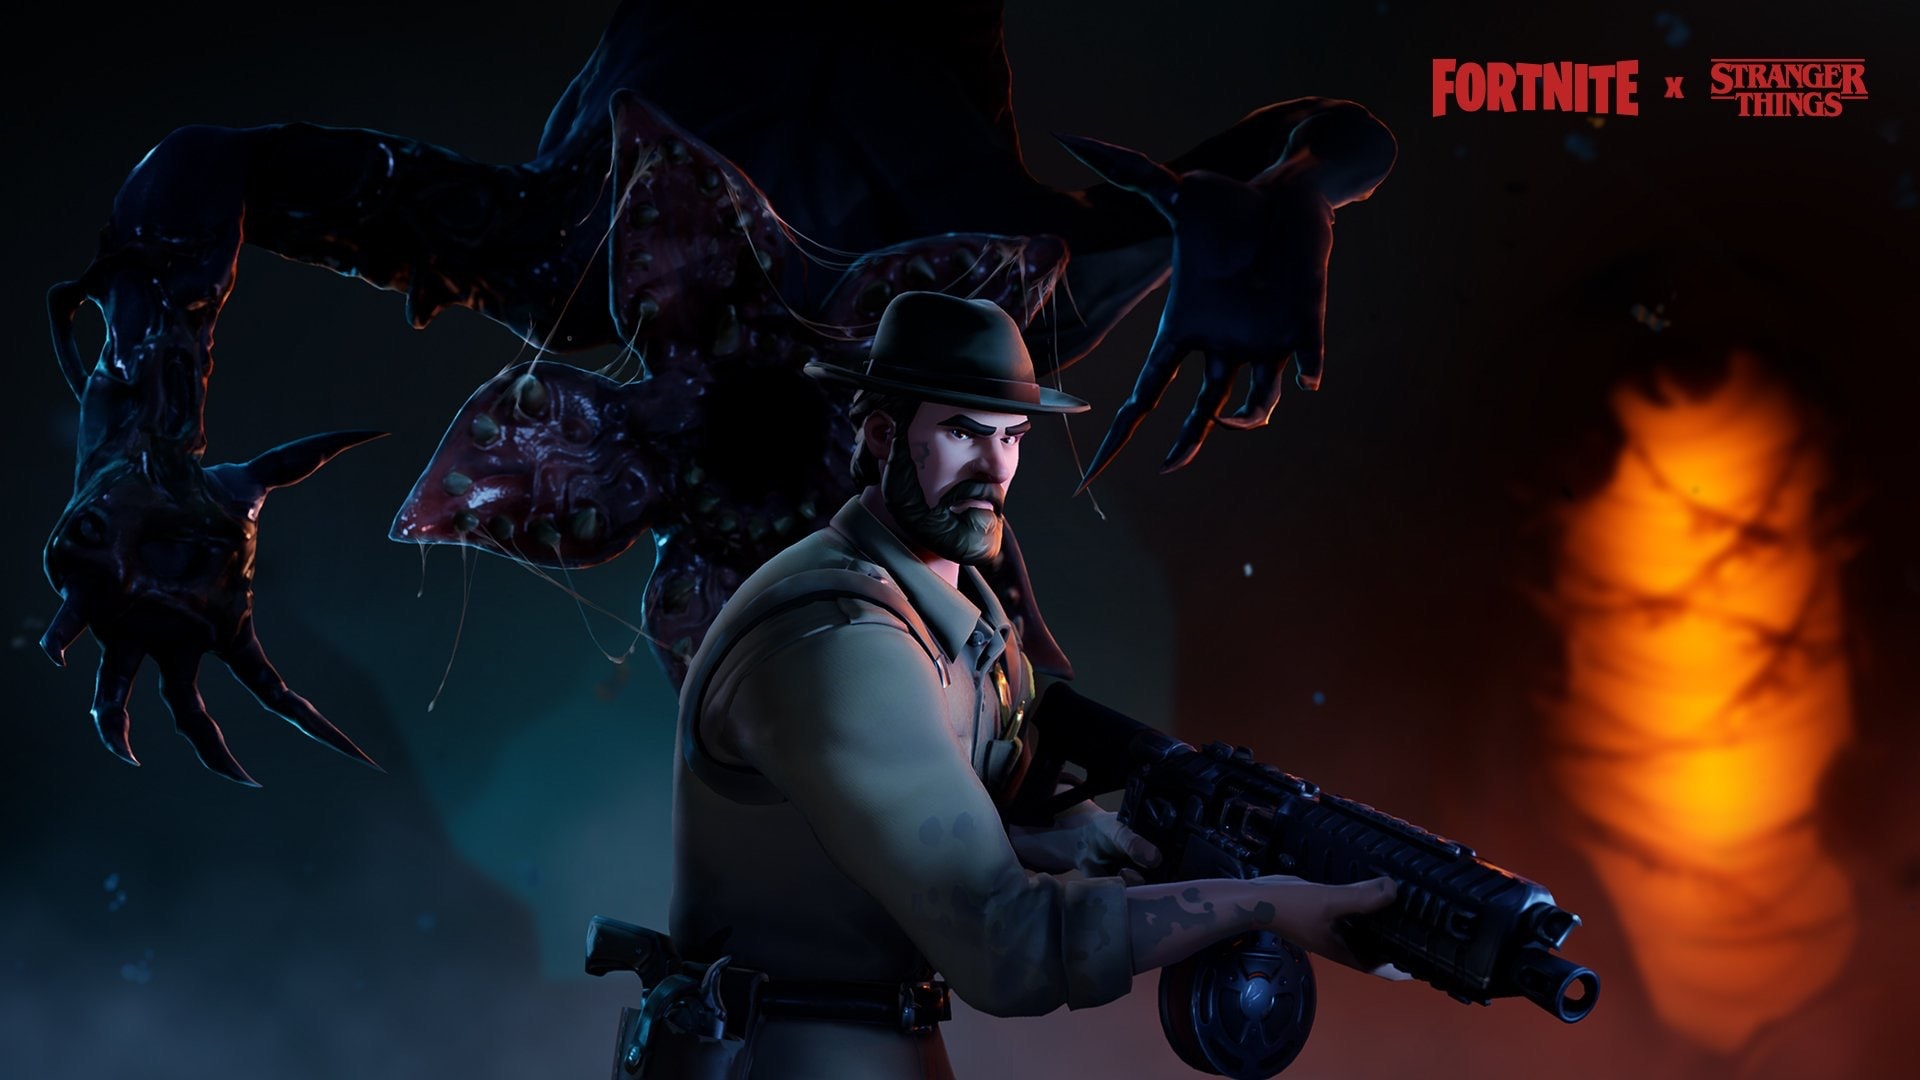 Stranger-Things-Chief-Hopper-Fortnite